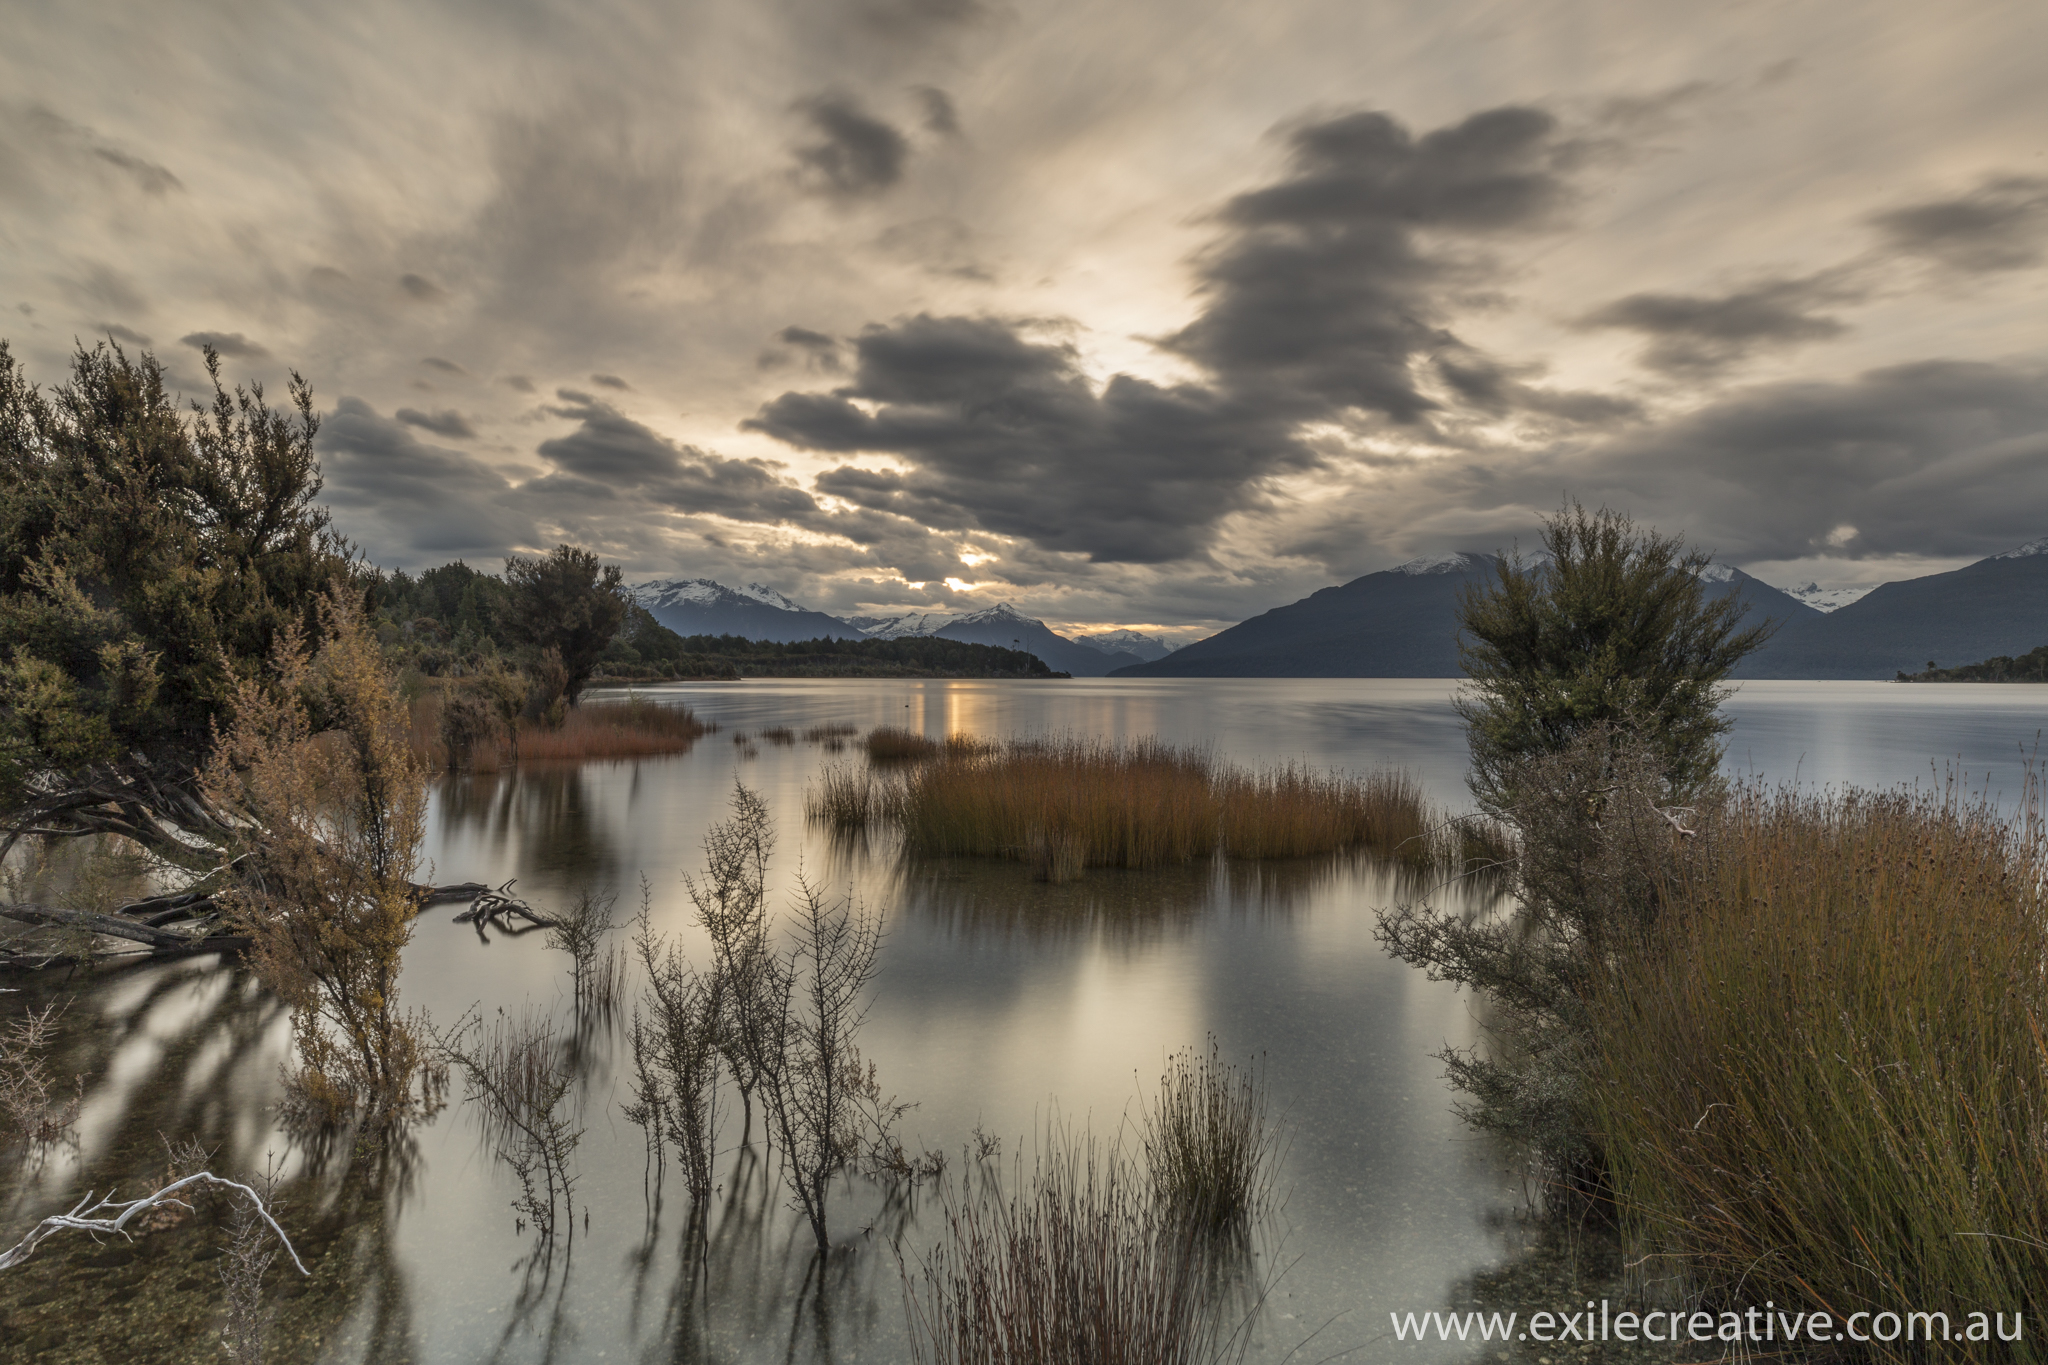 The sun begins to set on the Northern Shores of Lake Te Anu  Canon 5Dmiii, 16-35L iii @ 20mm, ISO200, f/18, 25s with 0.6ND and 0.9 Soft GND